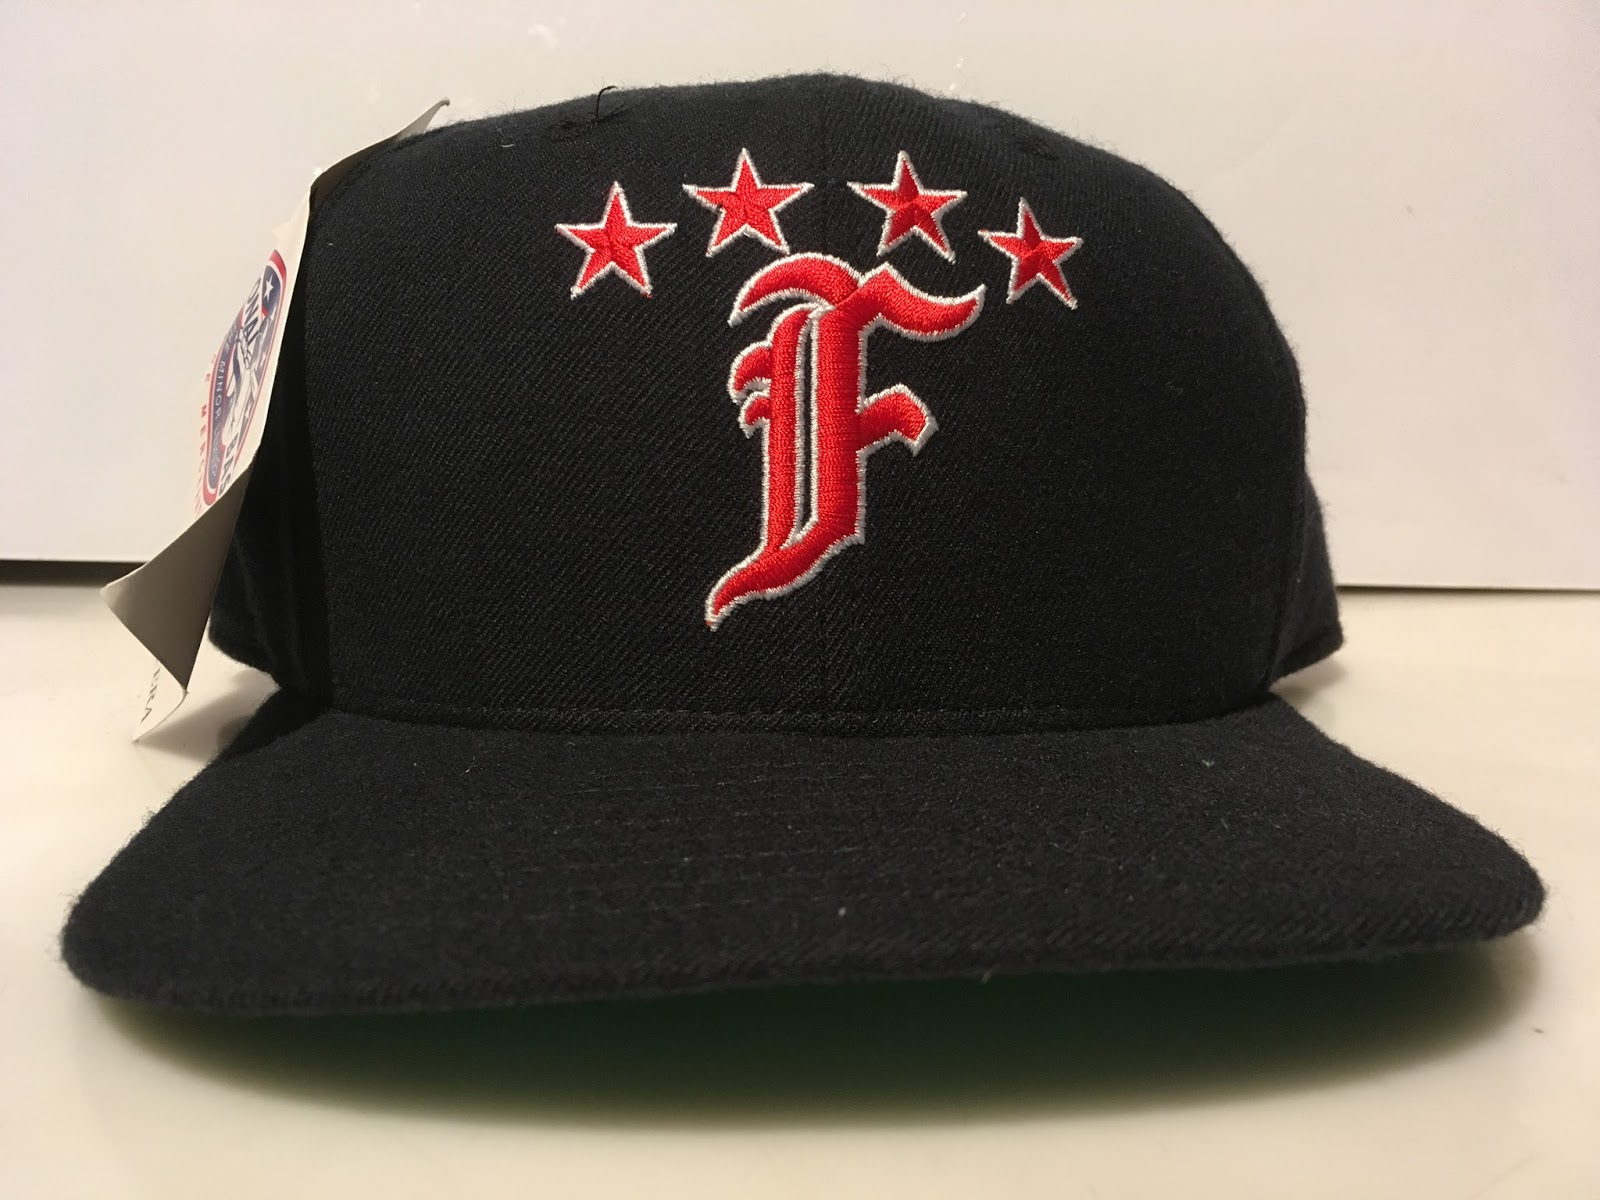 b108c843 The Fayetteville Generals were in existence from 1986-1996 and this is the  cap logo they rocked for the majority of that time. I'm not a Detroit  Tigers fan ...